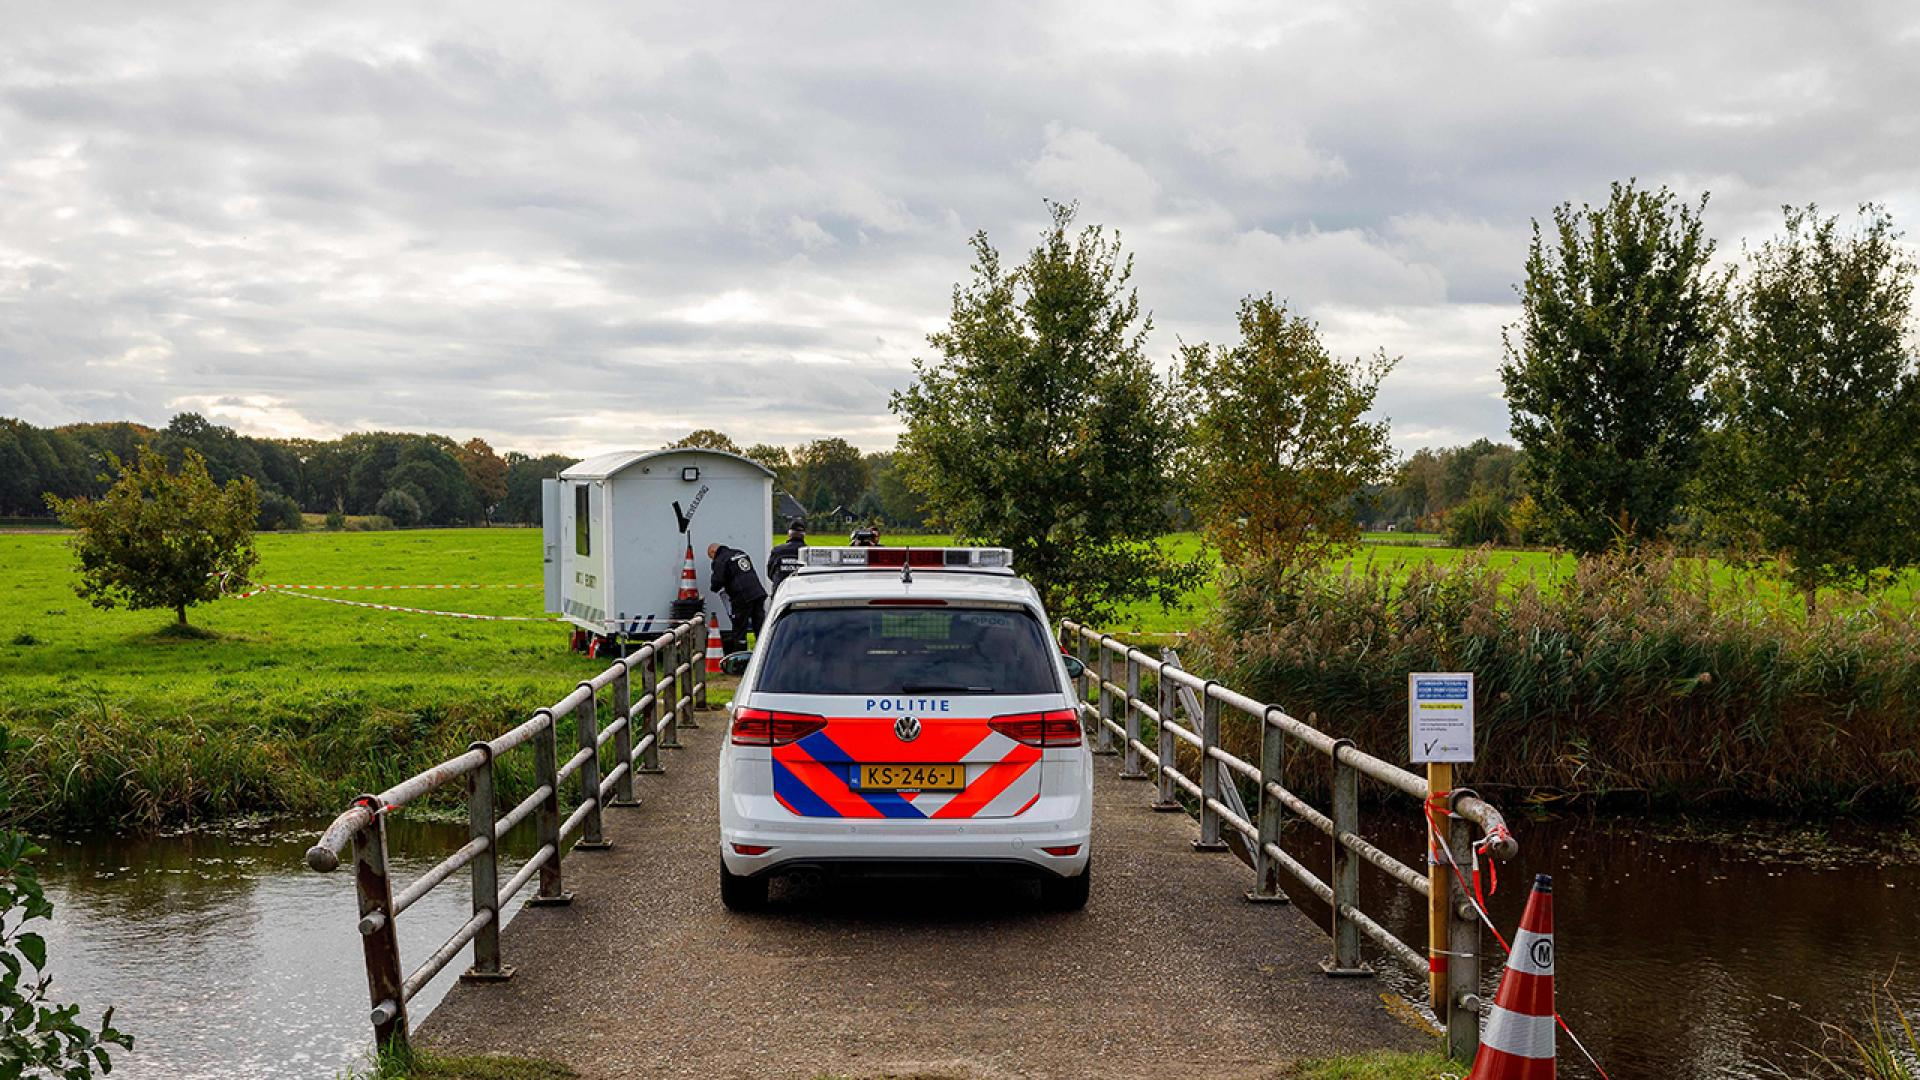 Scientific investigators work in the farm on the Buitenhuizerweg in Ruinerwold on October 18, 2019 during ongoing police searches.